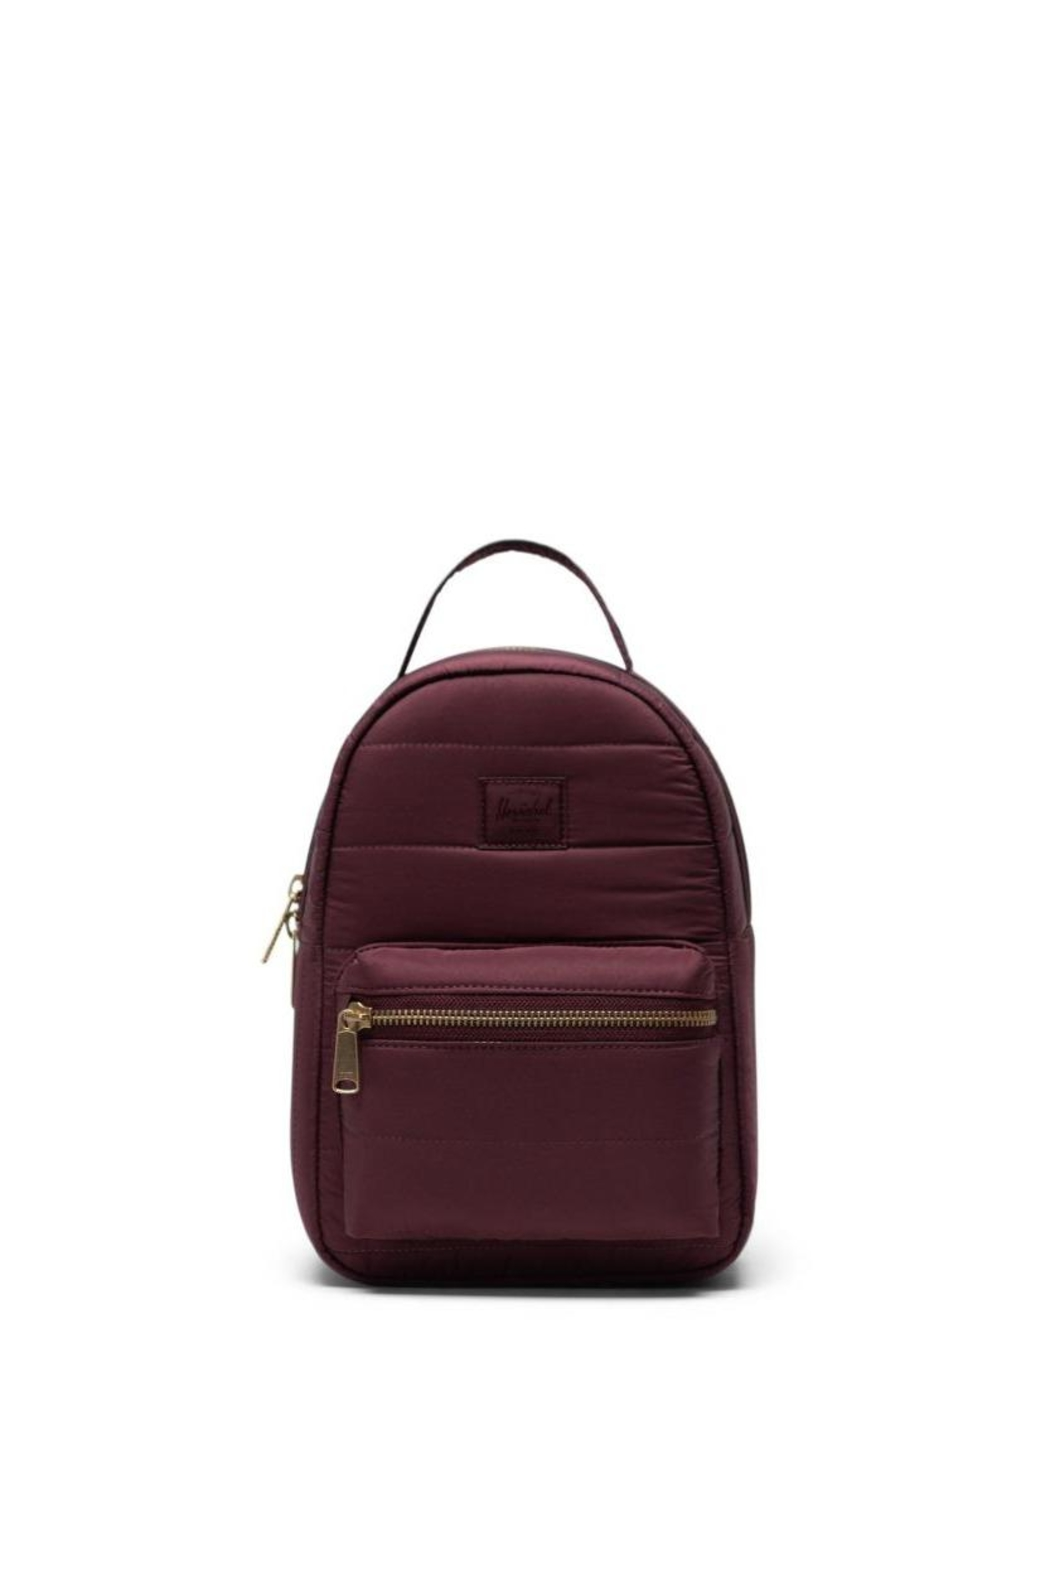 Herschel Supply Co. Plum Quilted Backpack - Main Image